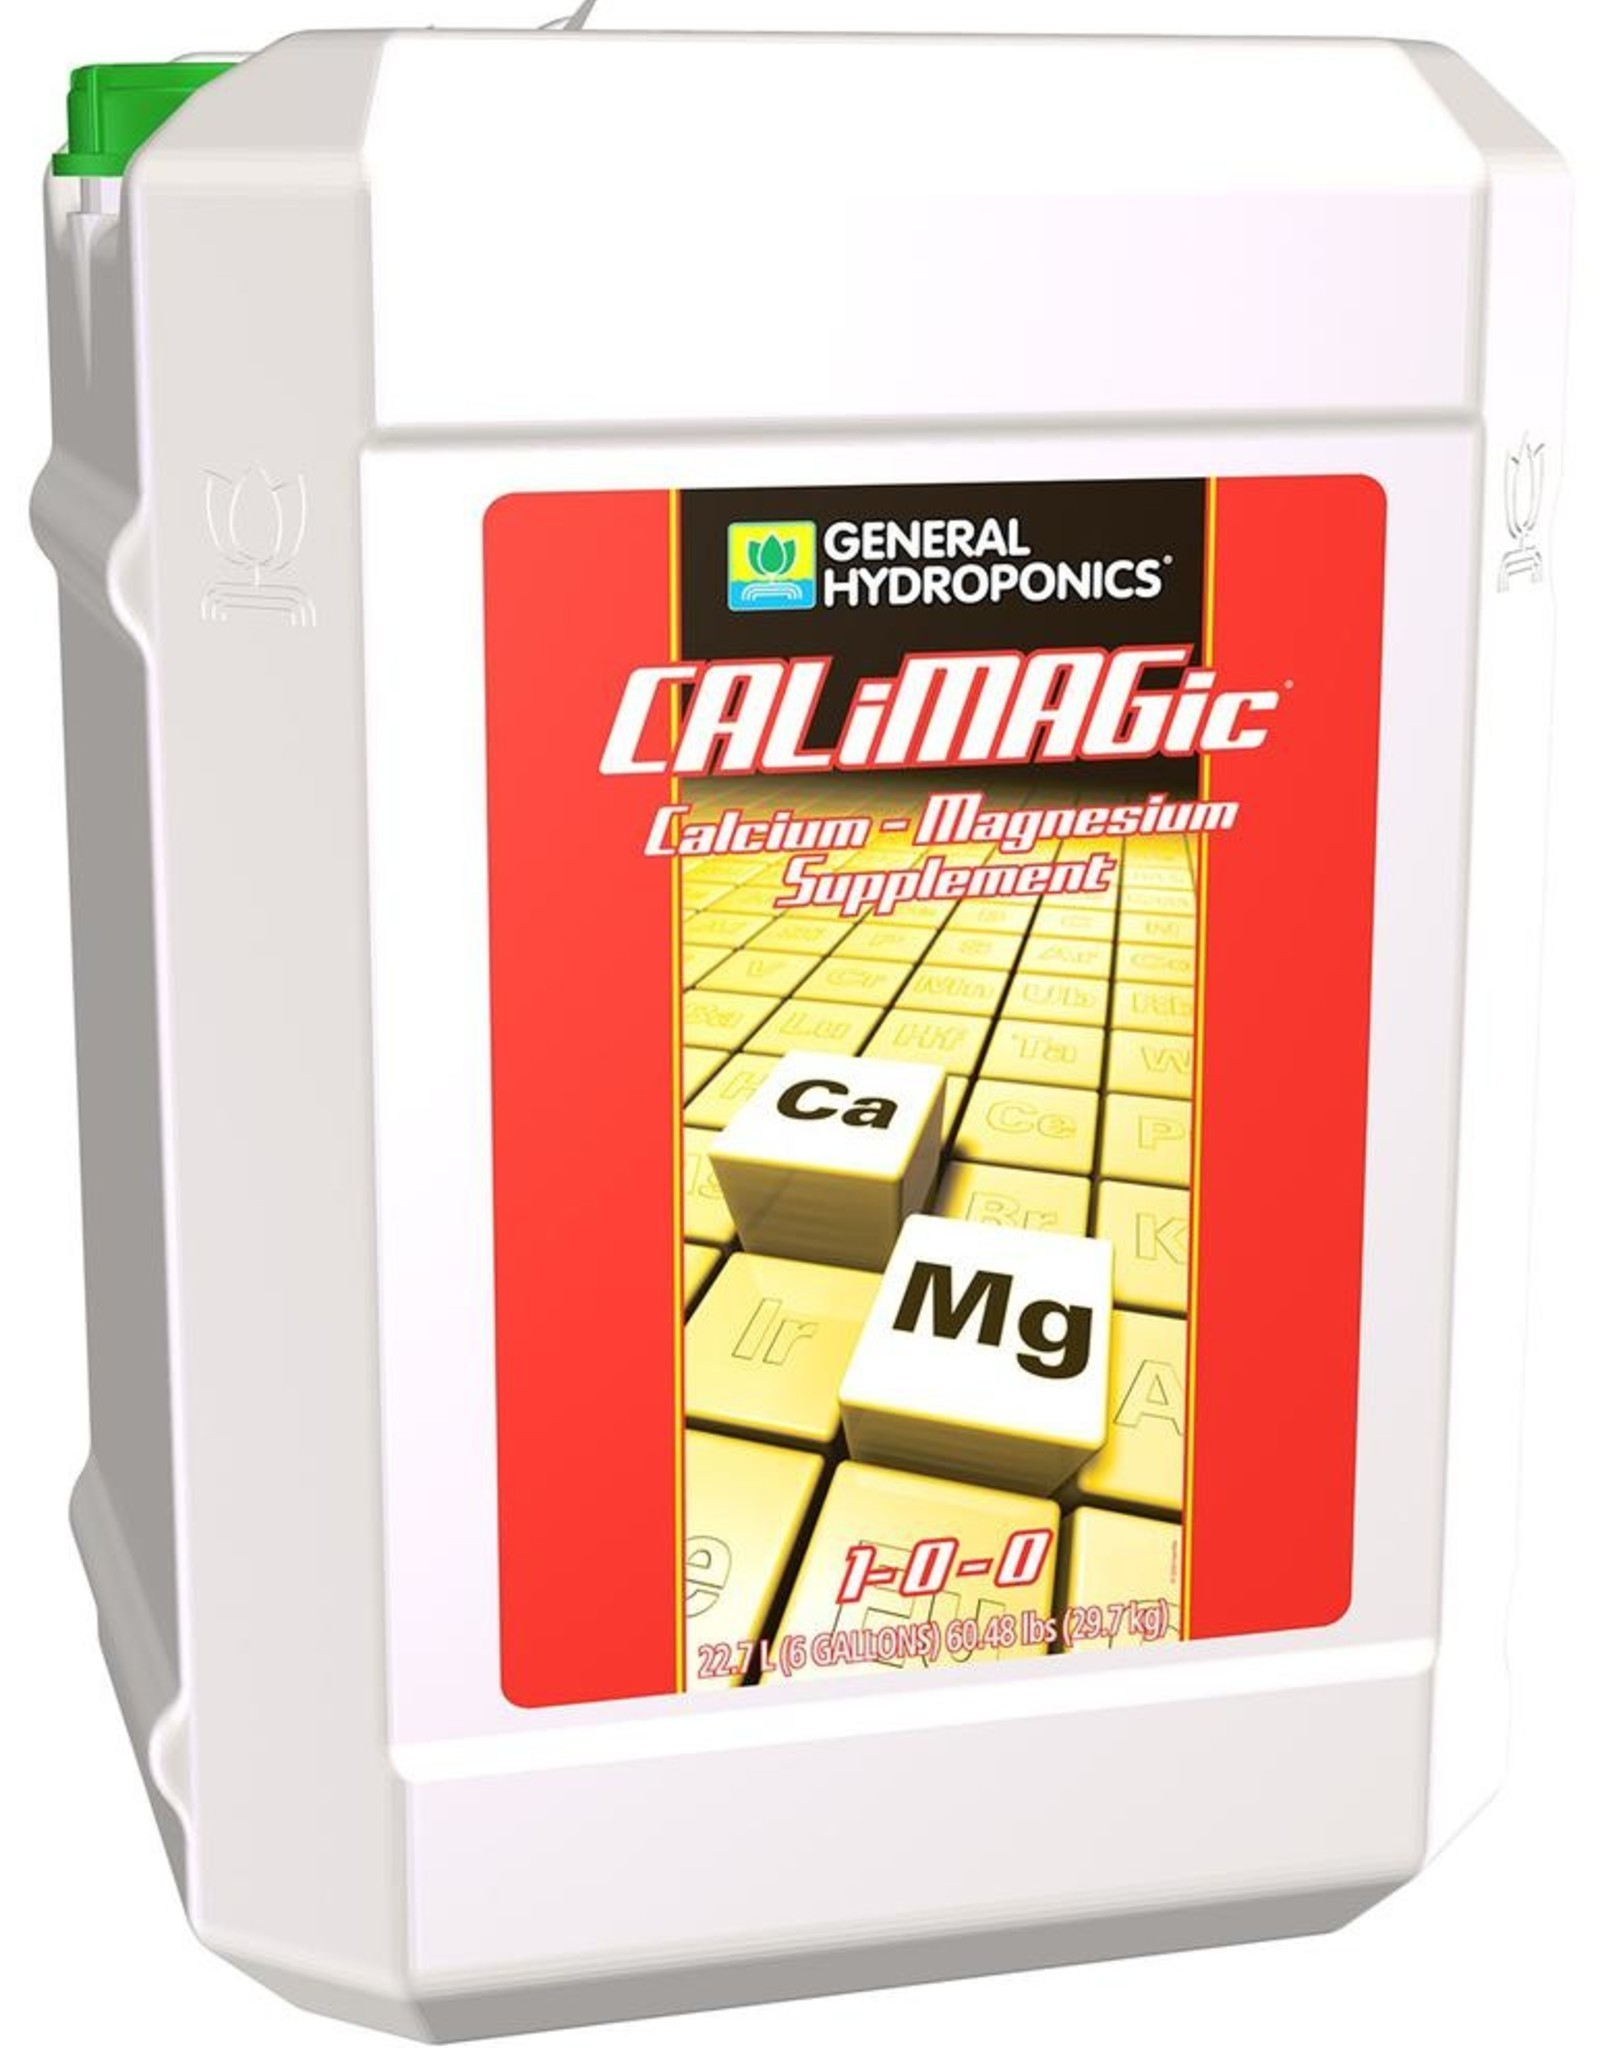 GENERAL HYDROPONICS CALiMAGic™ is a concentrated blend of readily available calcium and magnesium. It is formulated to assist fast growing plants by preventing secondary nutrient deficiencies. CALiMAGic™ helps optimize plant nutrition and enhances plant growth and developmen